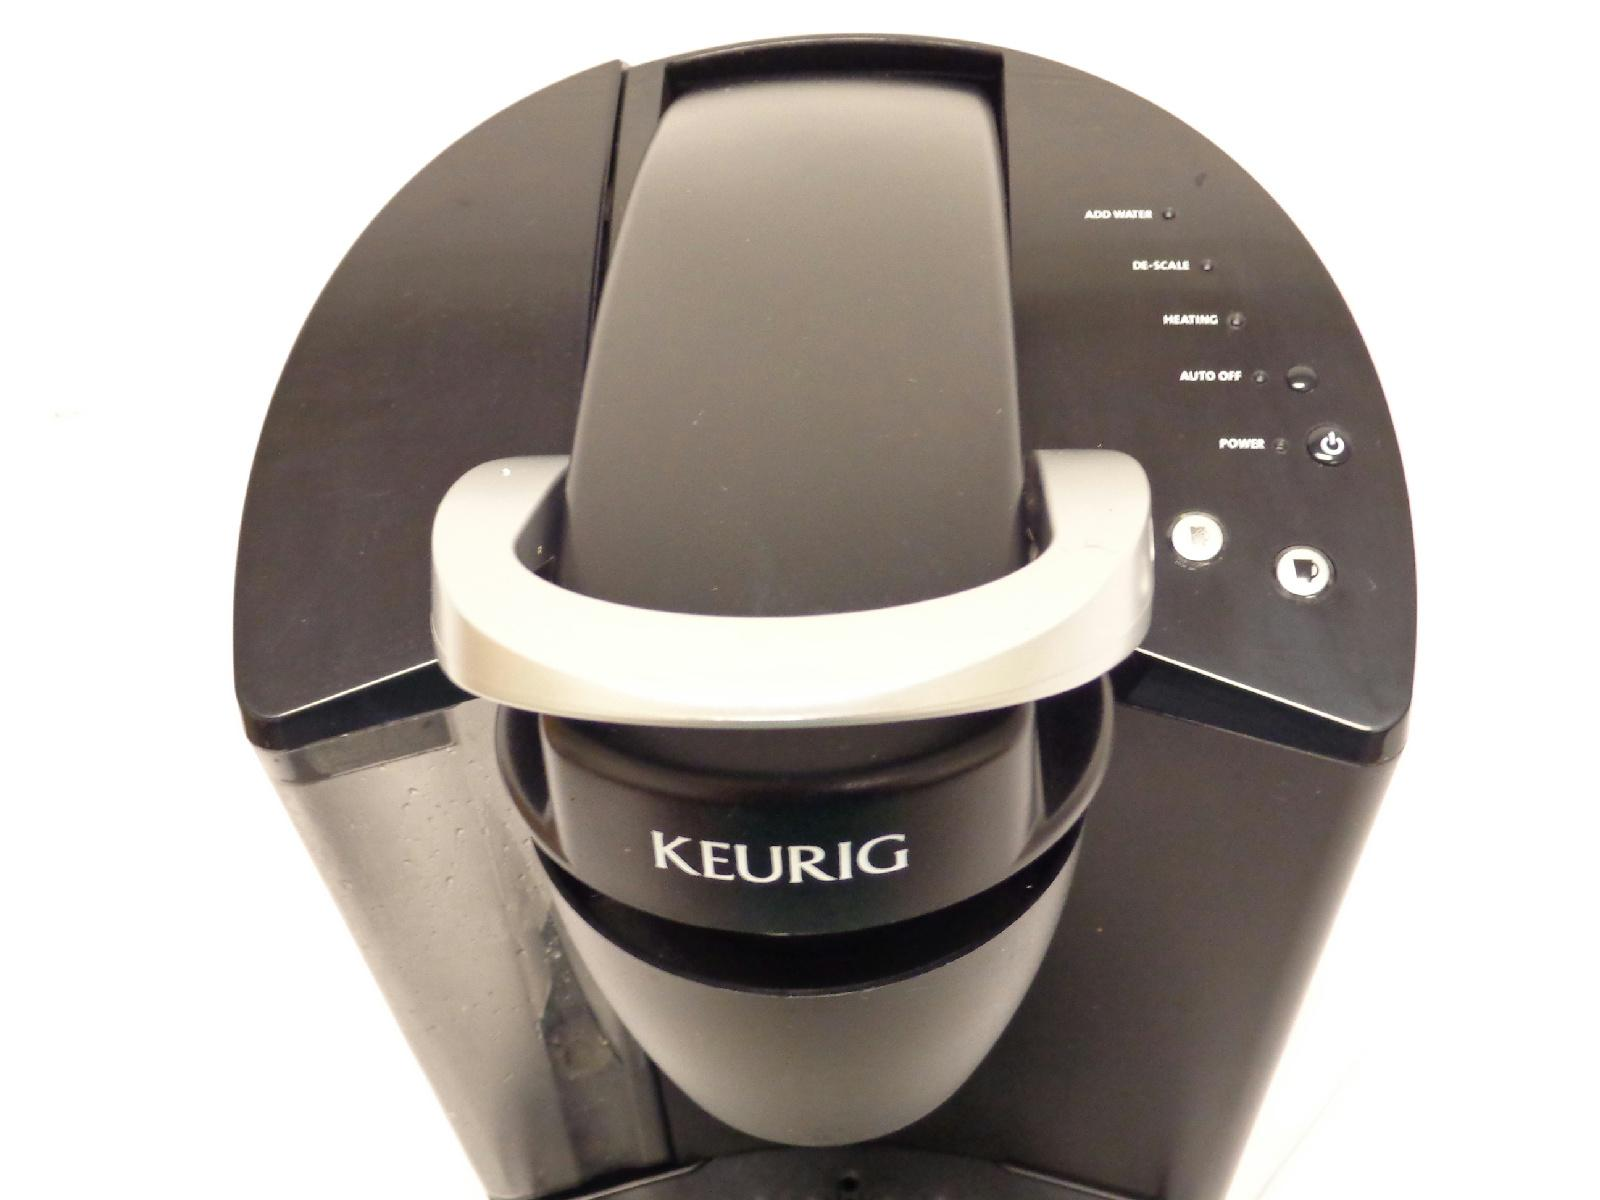 One Cup Coffee Maker Instructions : Keurig K10 Mini Plus Brewing System Manual myideasbedroom.com